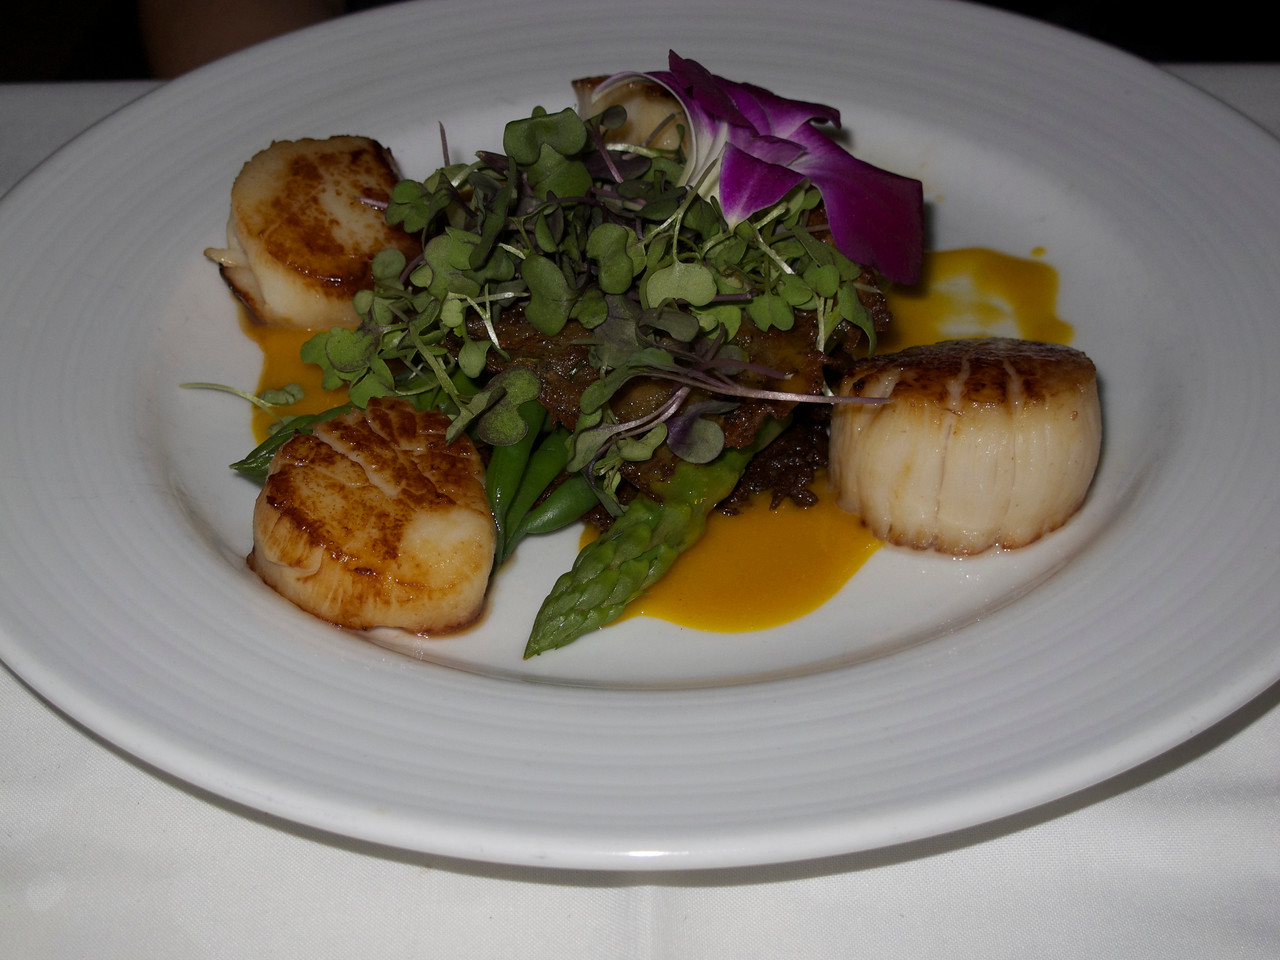 The scallops were excellent at the Rooftop Cafe.